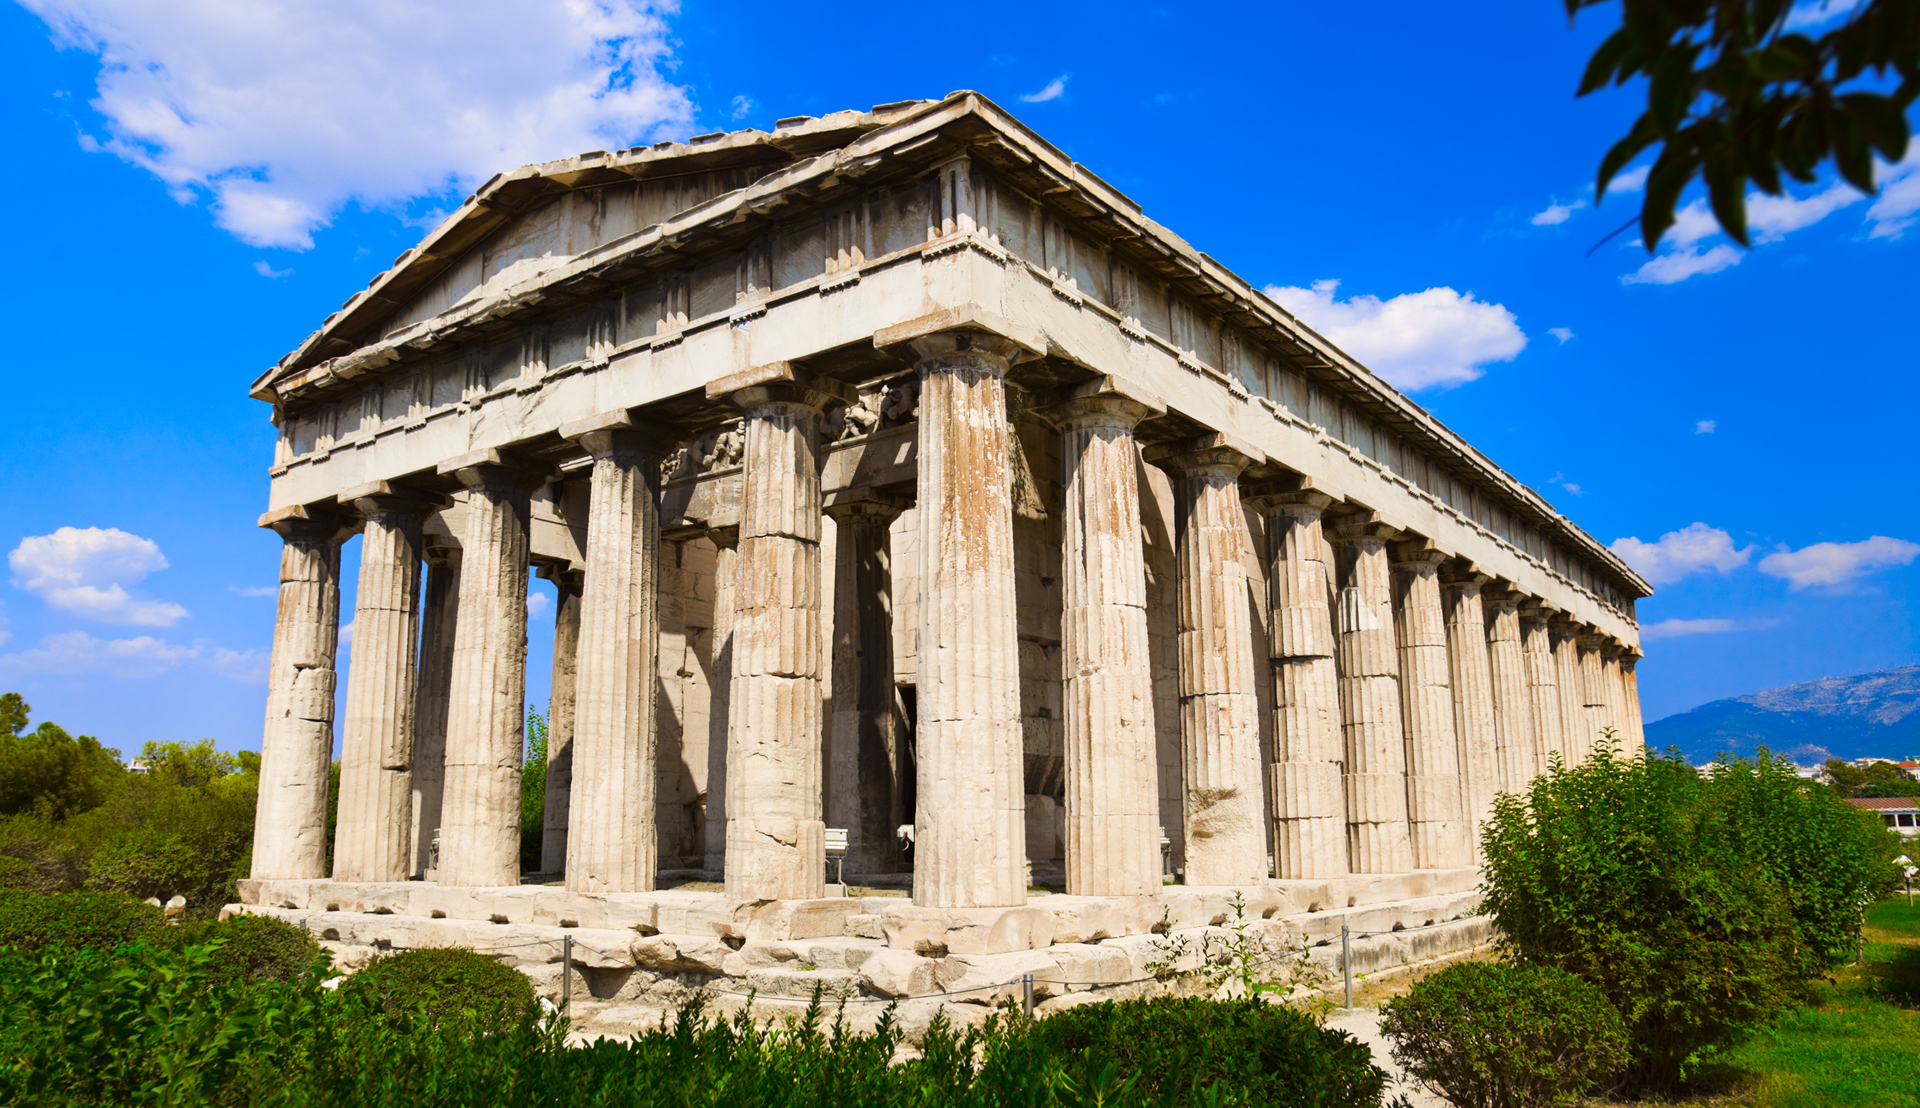 an analysis of solons rule over athens in ancient greece He also encouraged craftsmen to move to athens by allowing the children of those that stayed to be granted athenian citizenship and it was open to all male citizens over the age of 21 attendance in the ecclesia was mandatory ancient greece: a concise history.